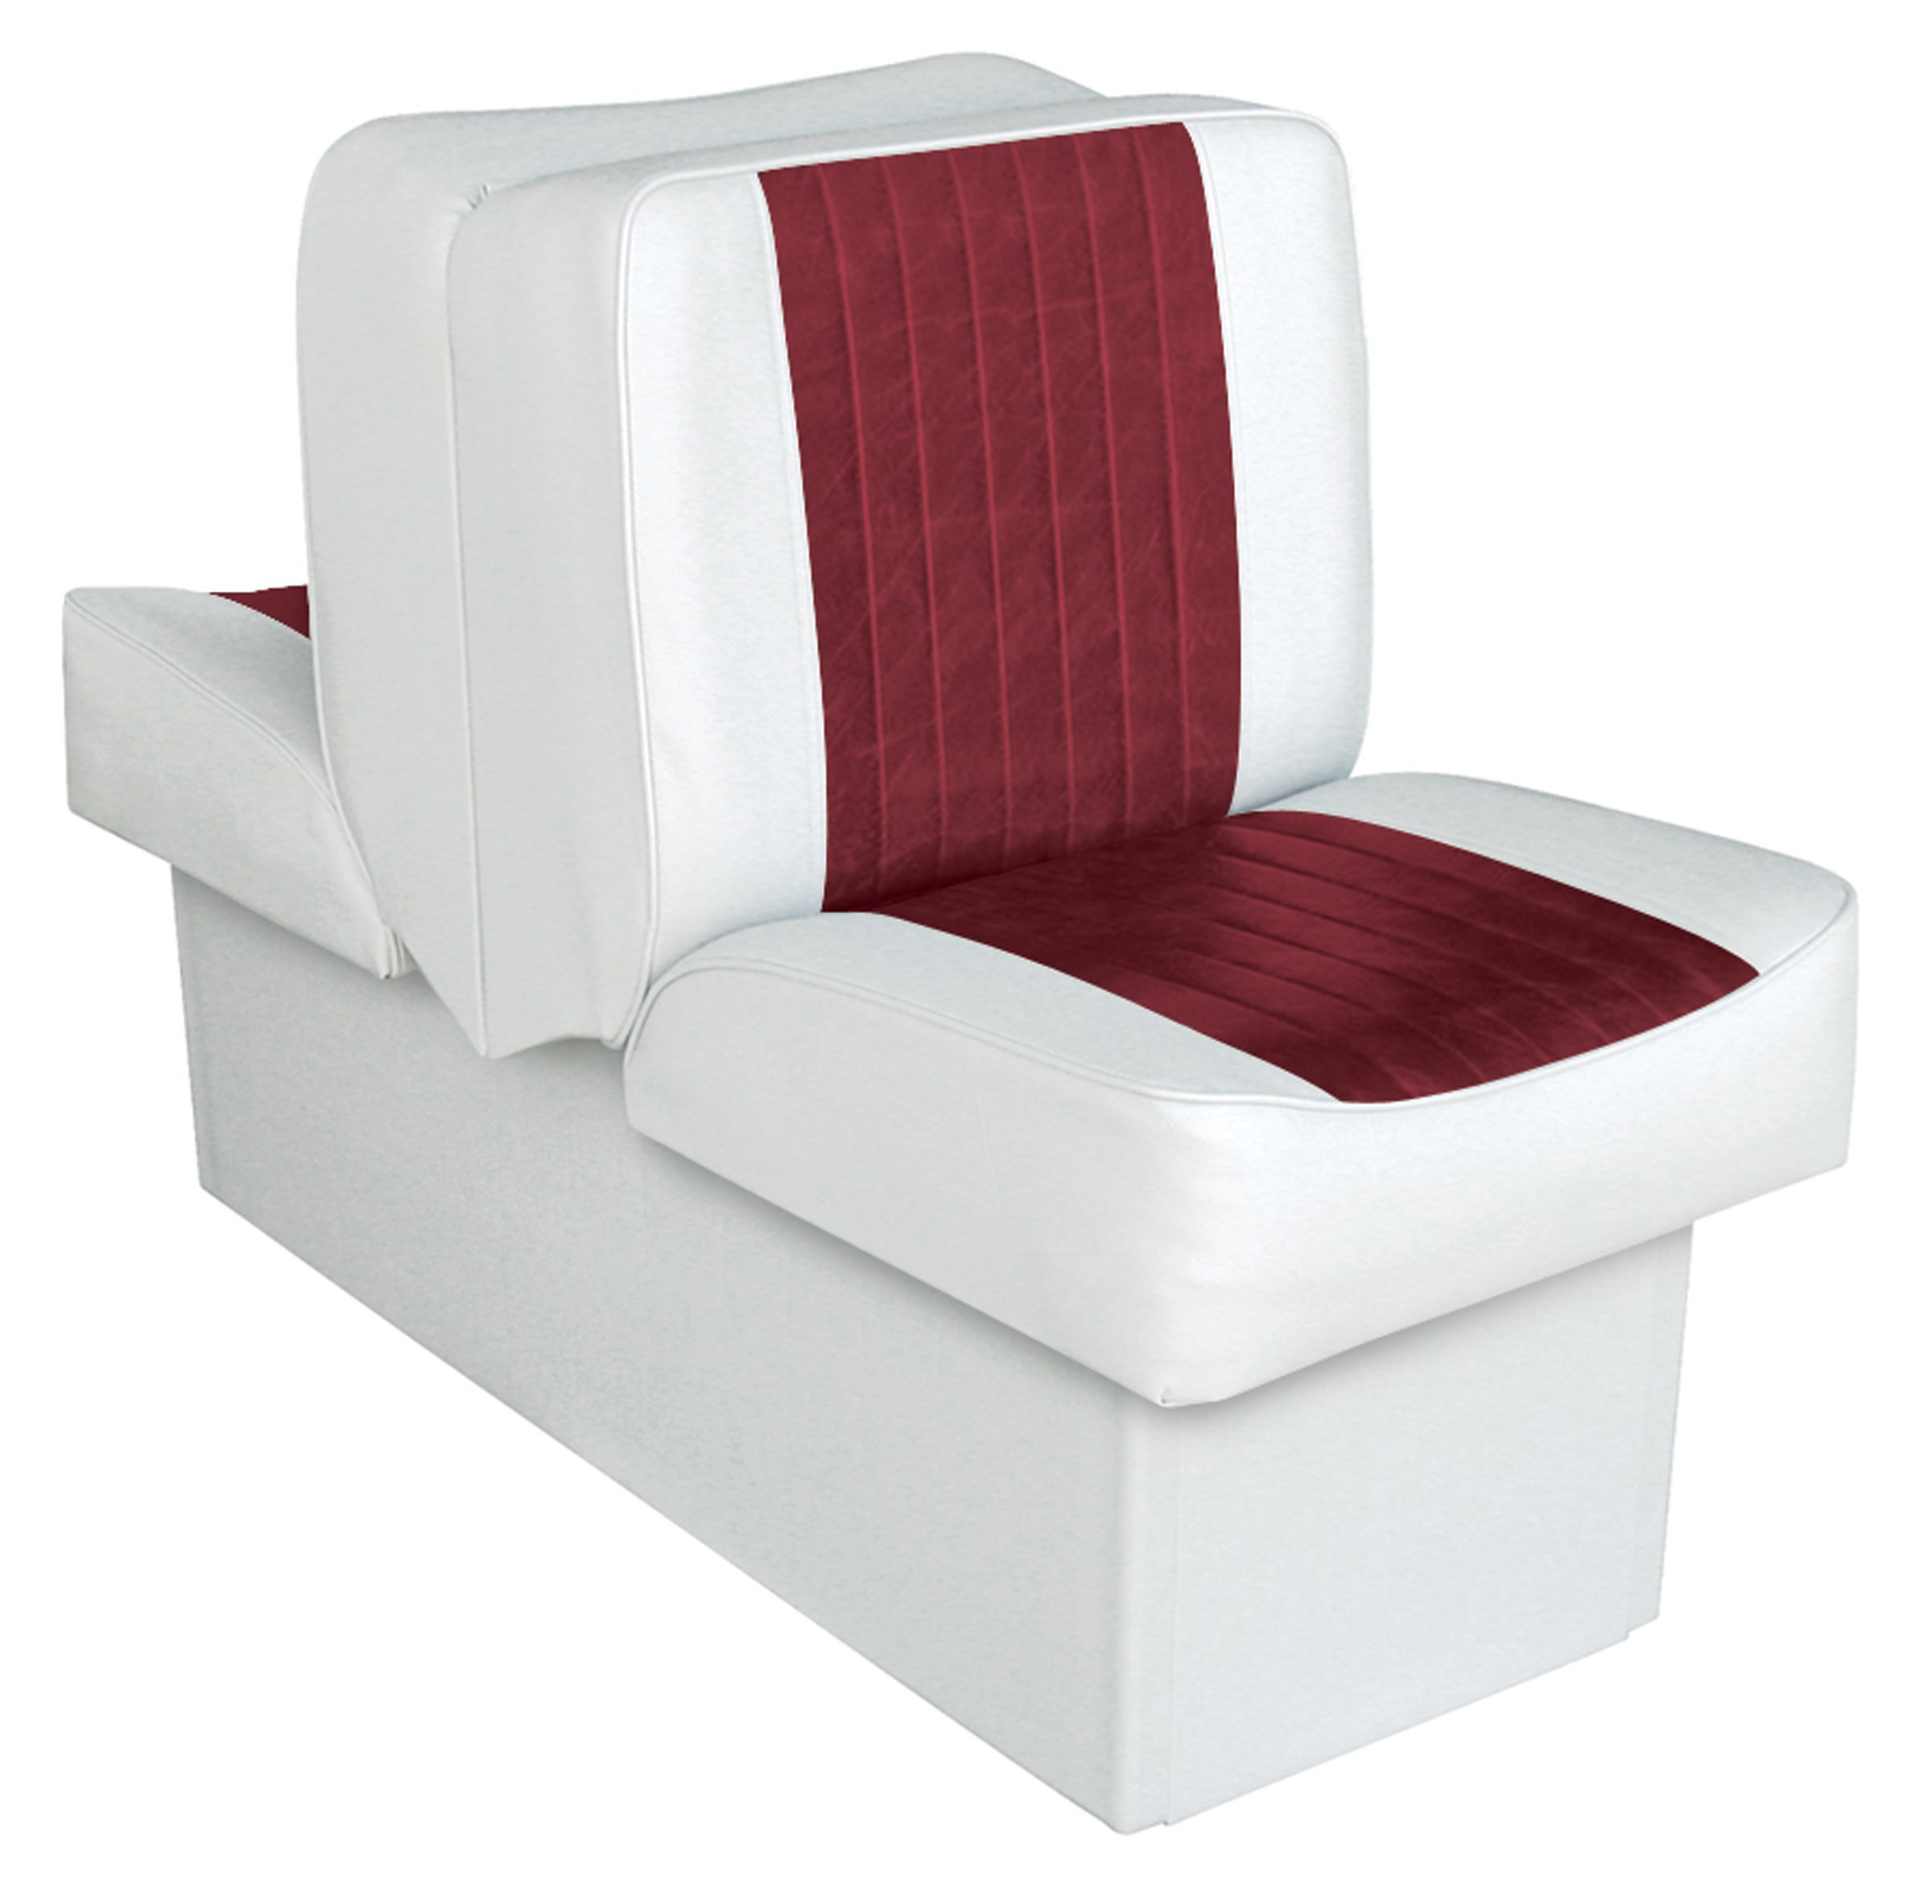 Wise 8WD707P-1-925 Deluxe Lounge Seat (White/Red) by Wise